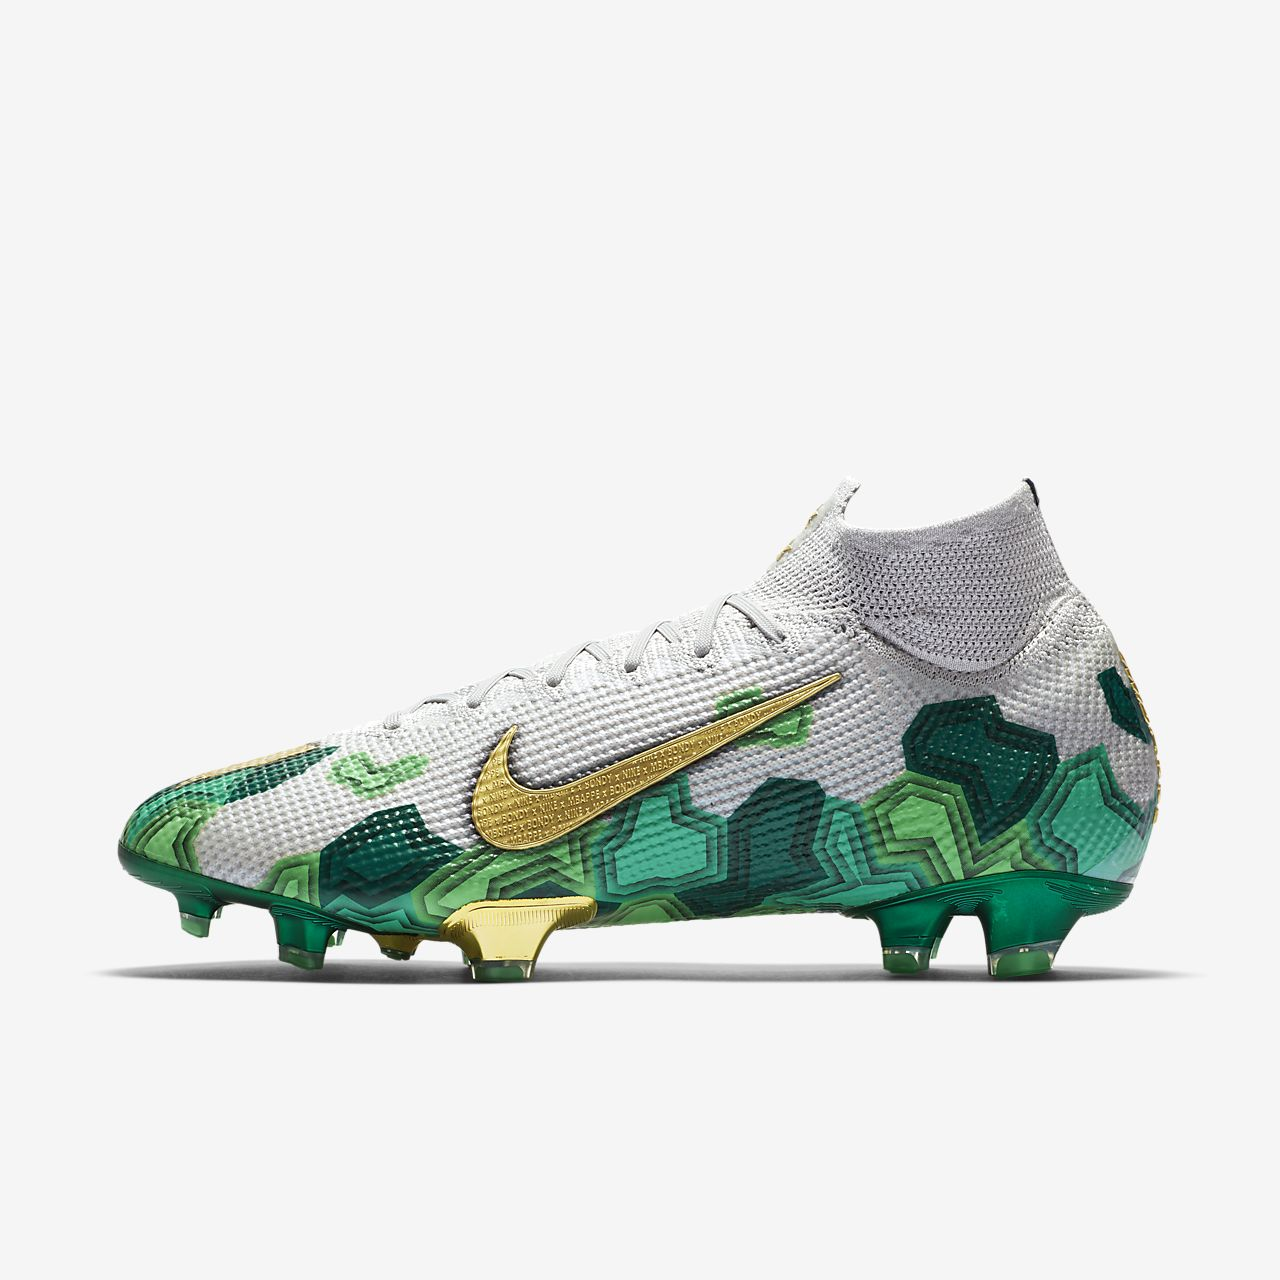 usa cheap sale official site preview of Nike Mercurial Superfly 7 Elite SE FG Firm-Ground Football Boot